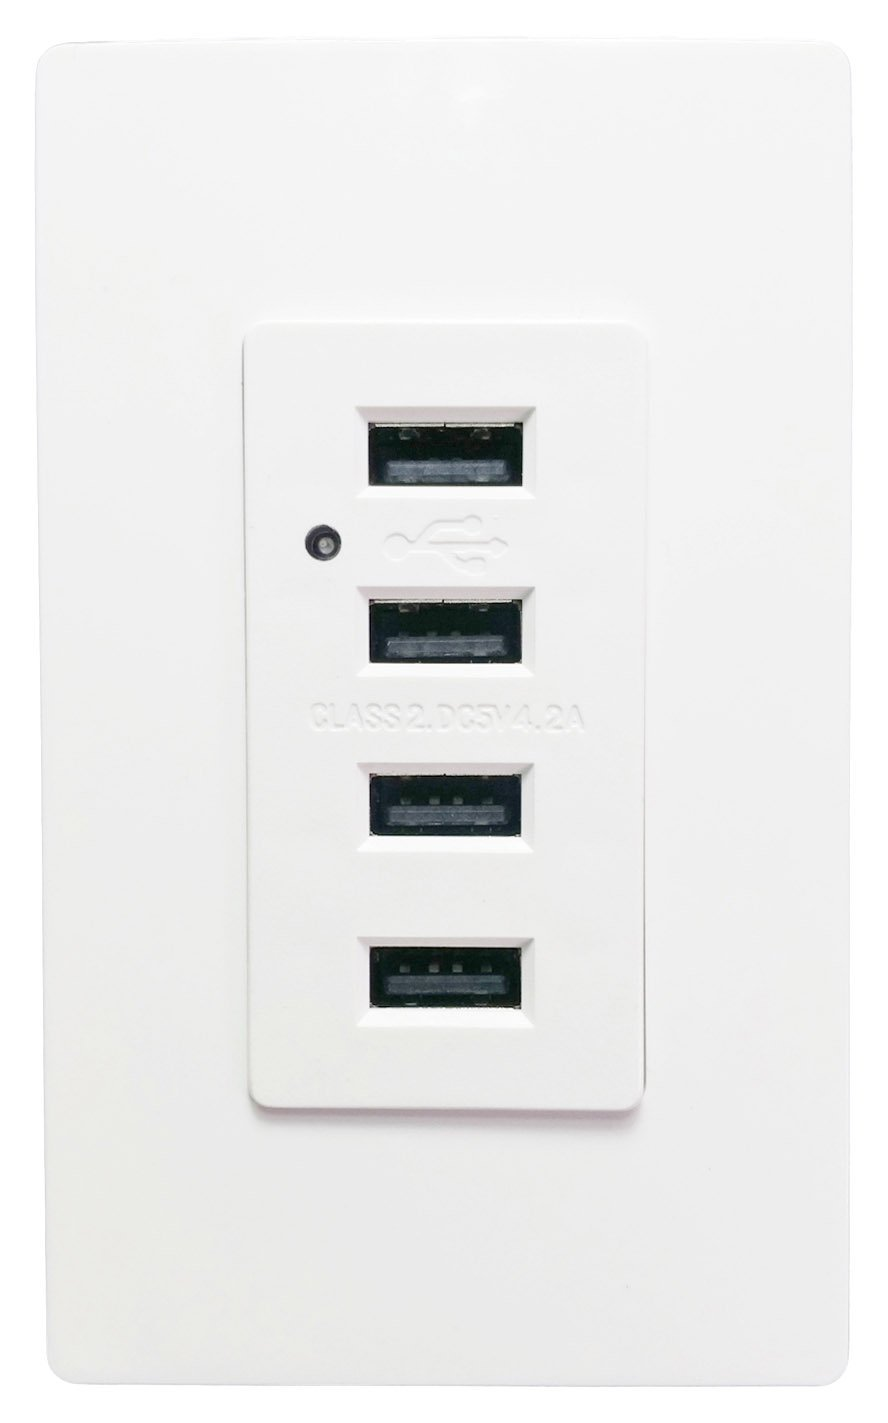 Seckatech 4 USB Ports Charger Wall Outlet, Smart High Speed ...